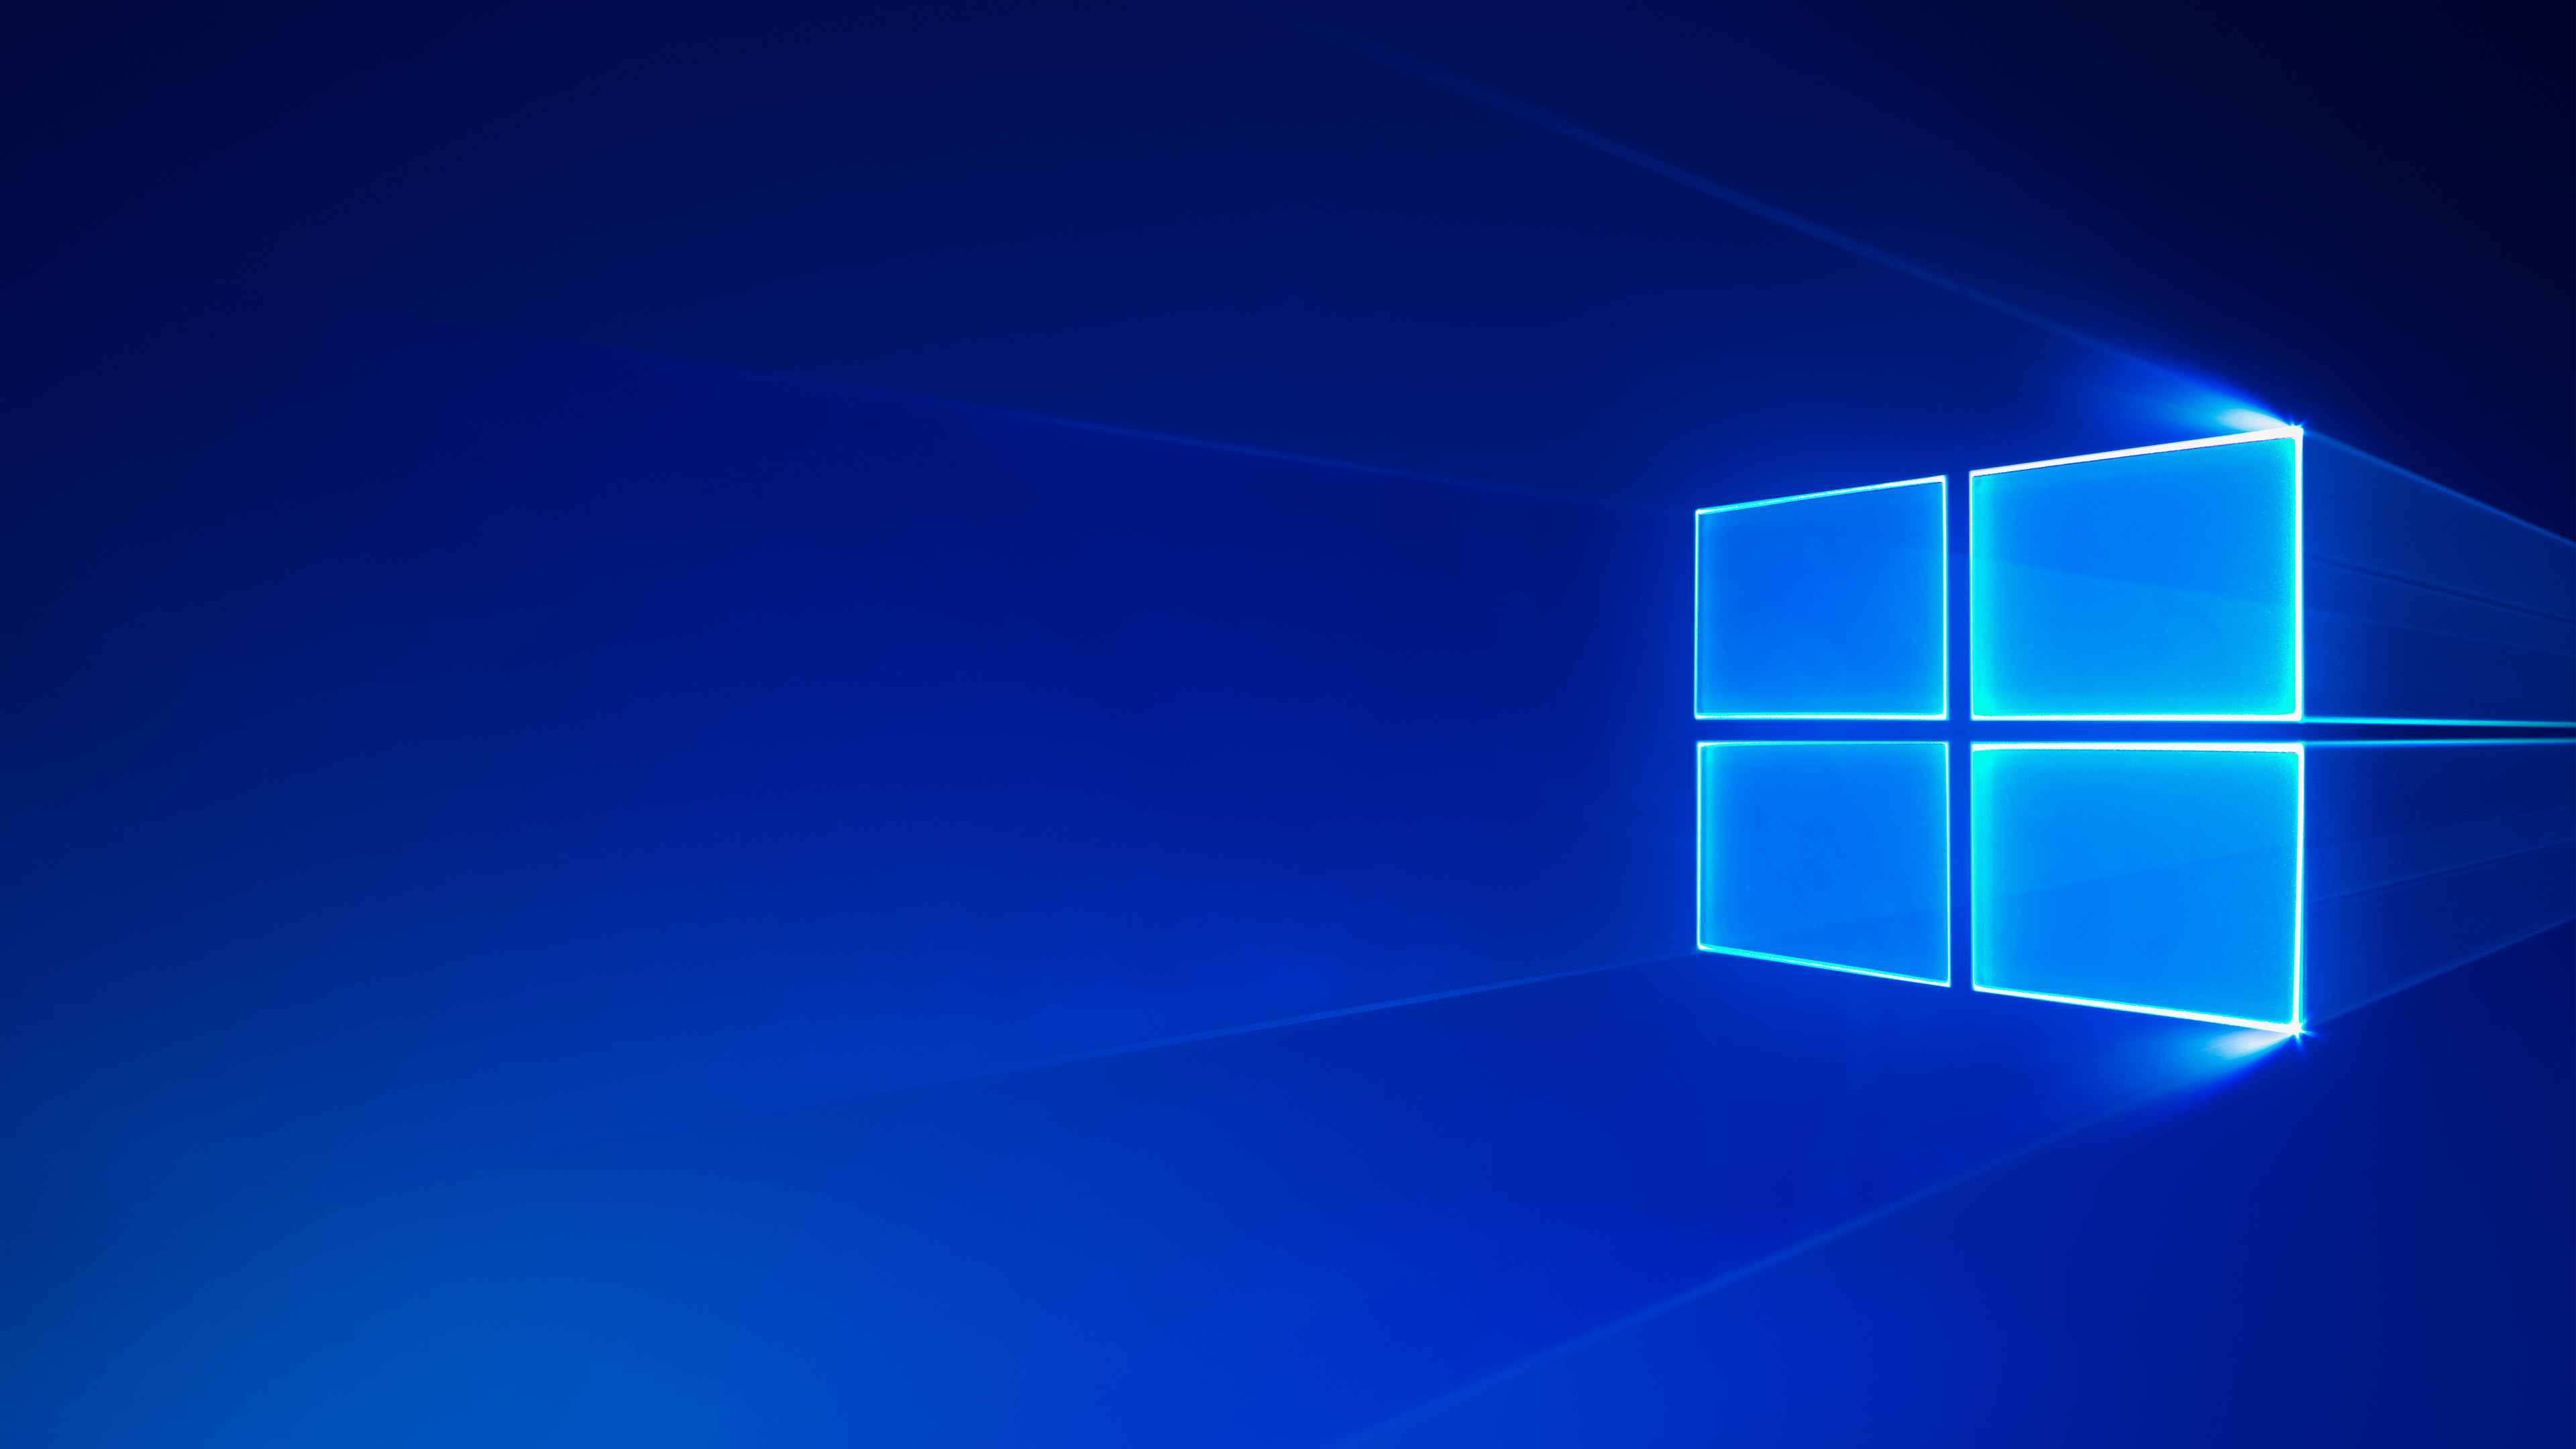 Windows server 2018 wallpapers 69 background pictures - 3000x1920 wallpaper ...